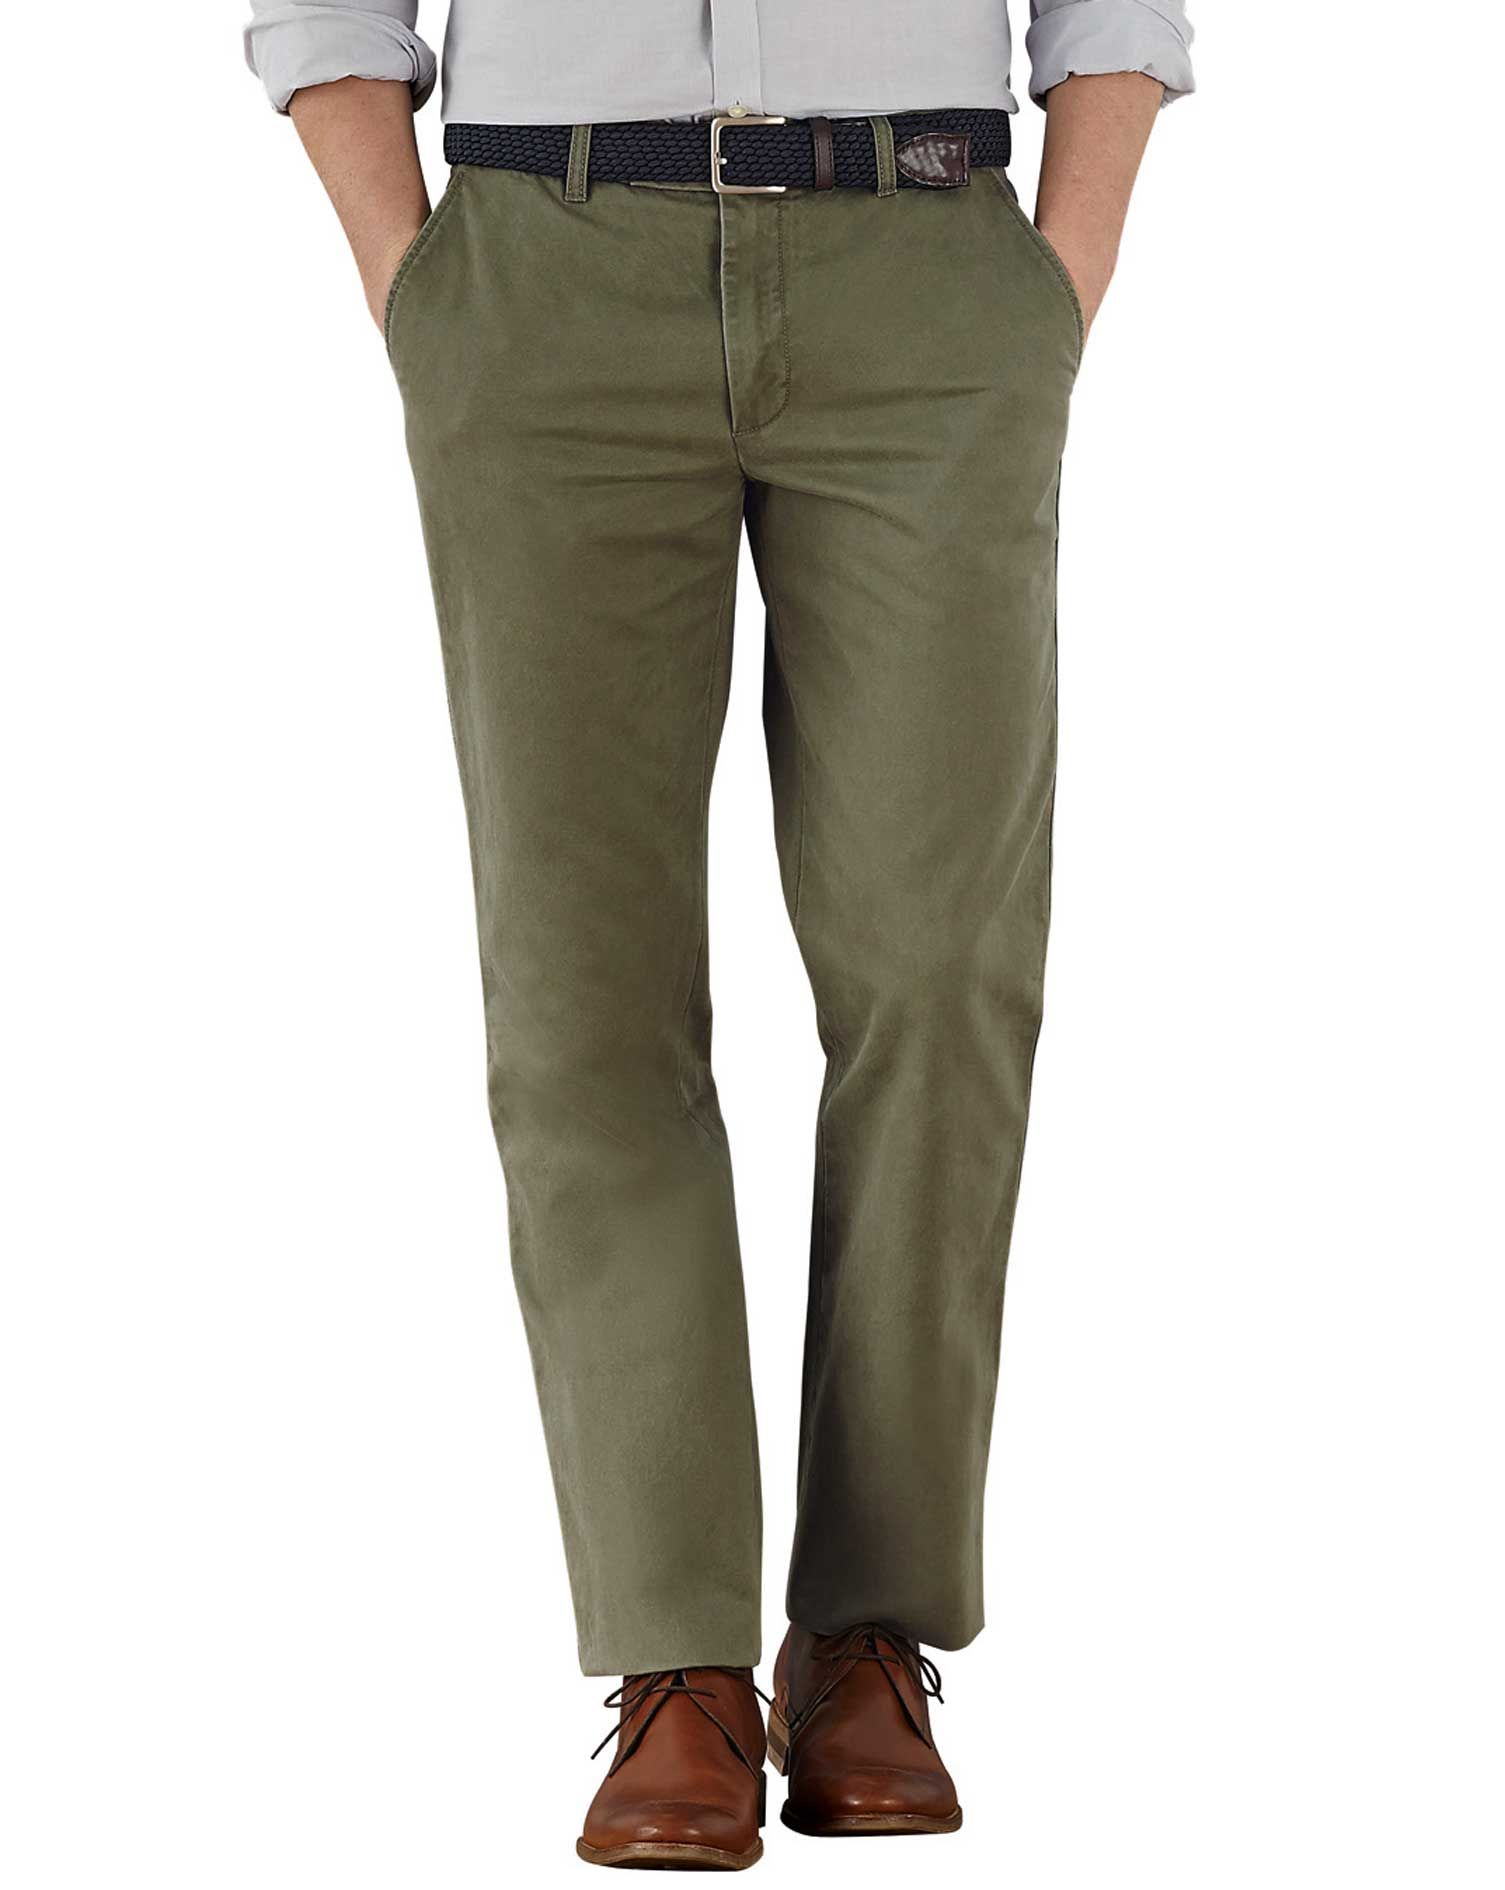 Olive Slim Fit Flat Front Cotton Chino Trousers Size W30 L34 by Charles Tyrwhitt